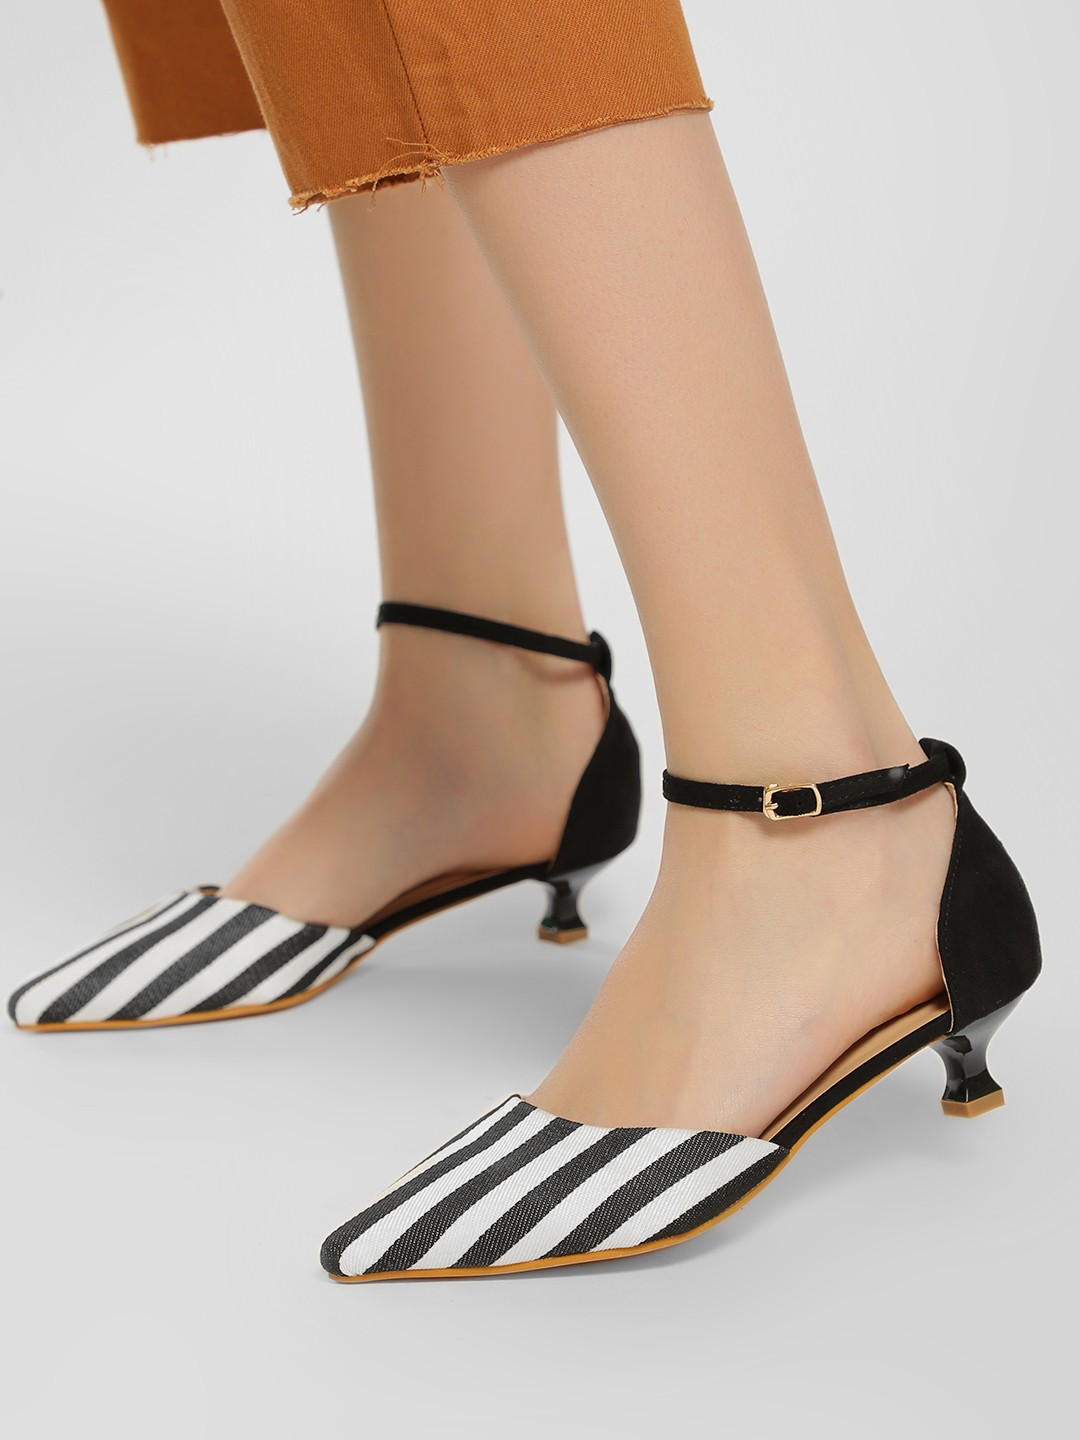 My Foot Couture Black Monochrome Stripe Kitten Heel Pumps 1